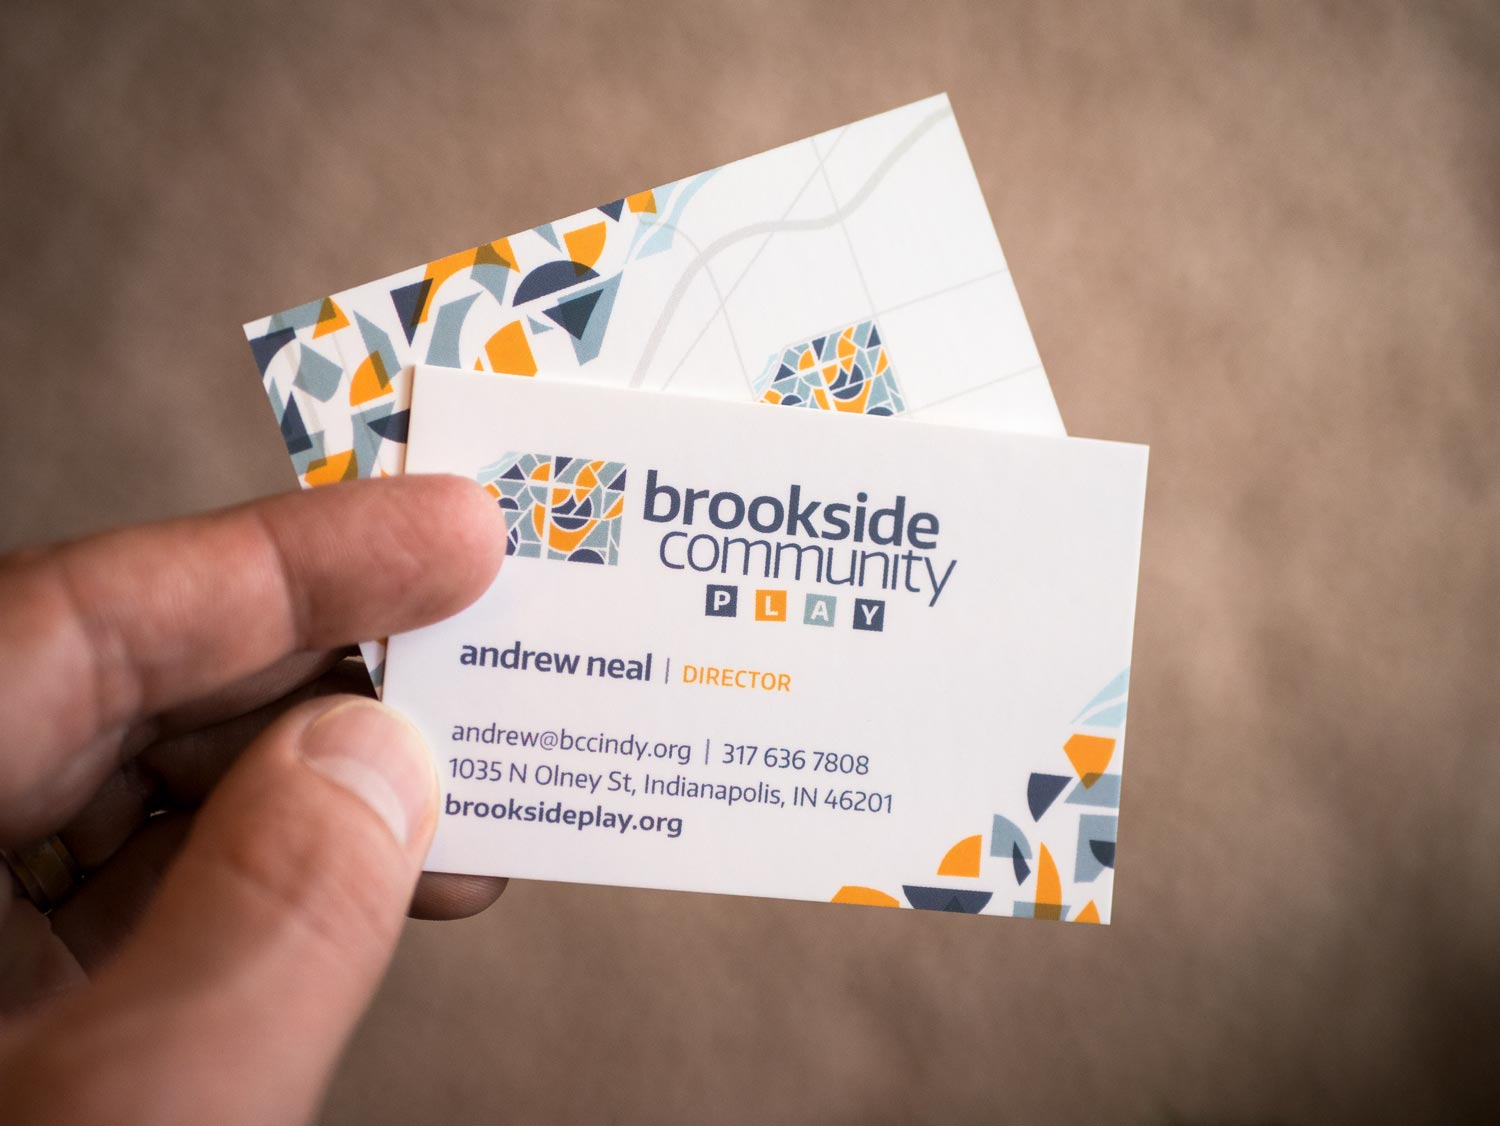 Brookside Community Play business cards. Design by Jeff Miller, HellothisisJeff Design